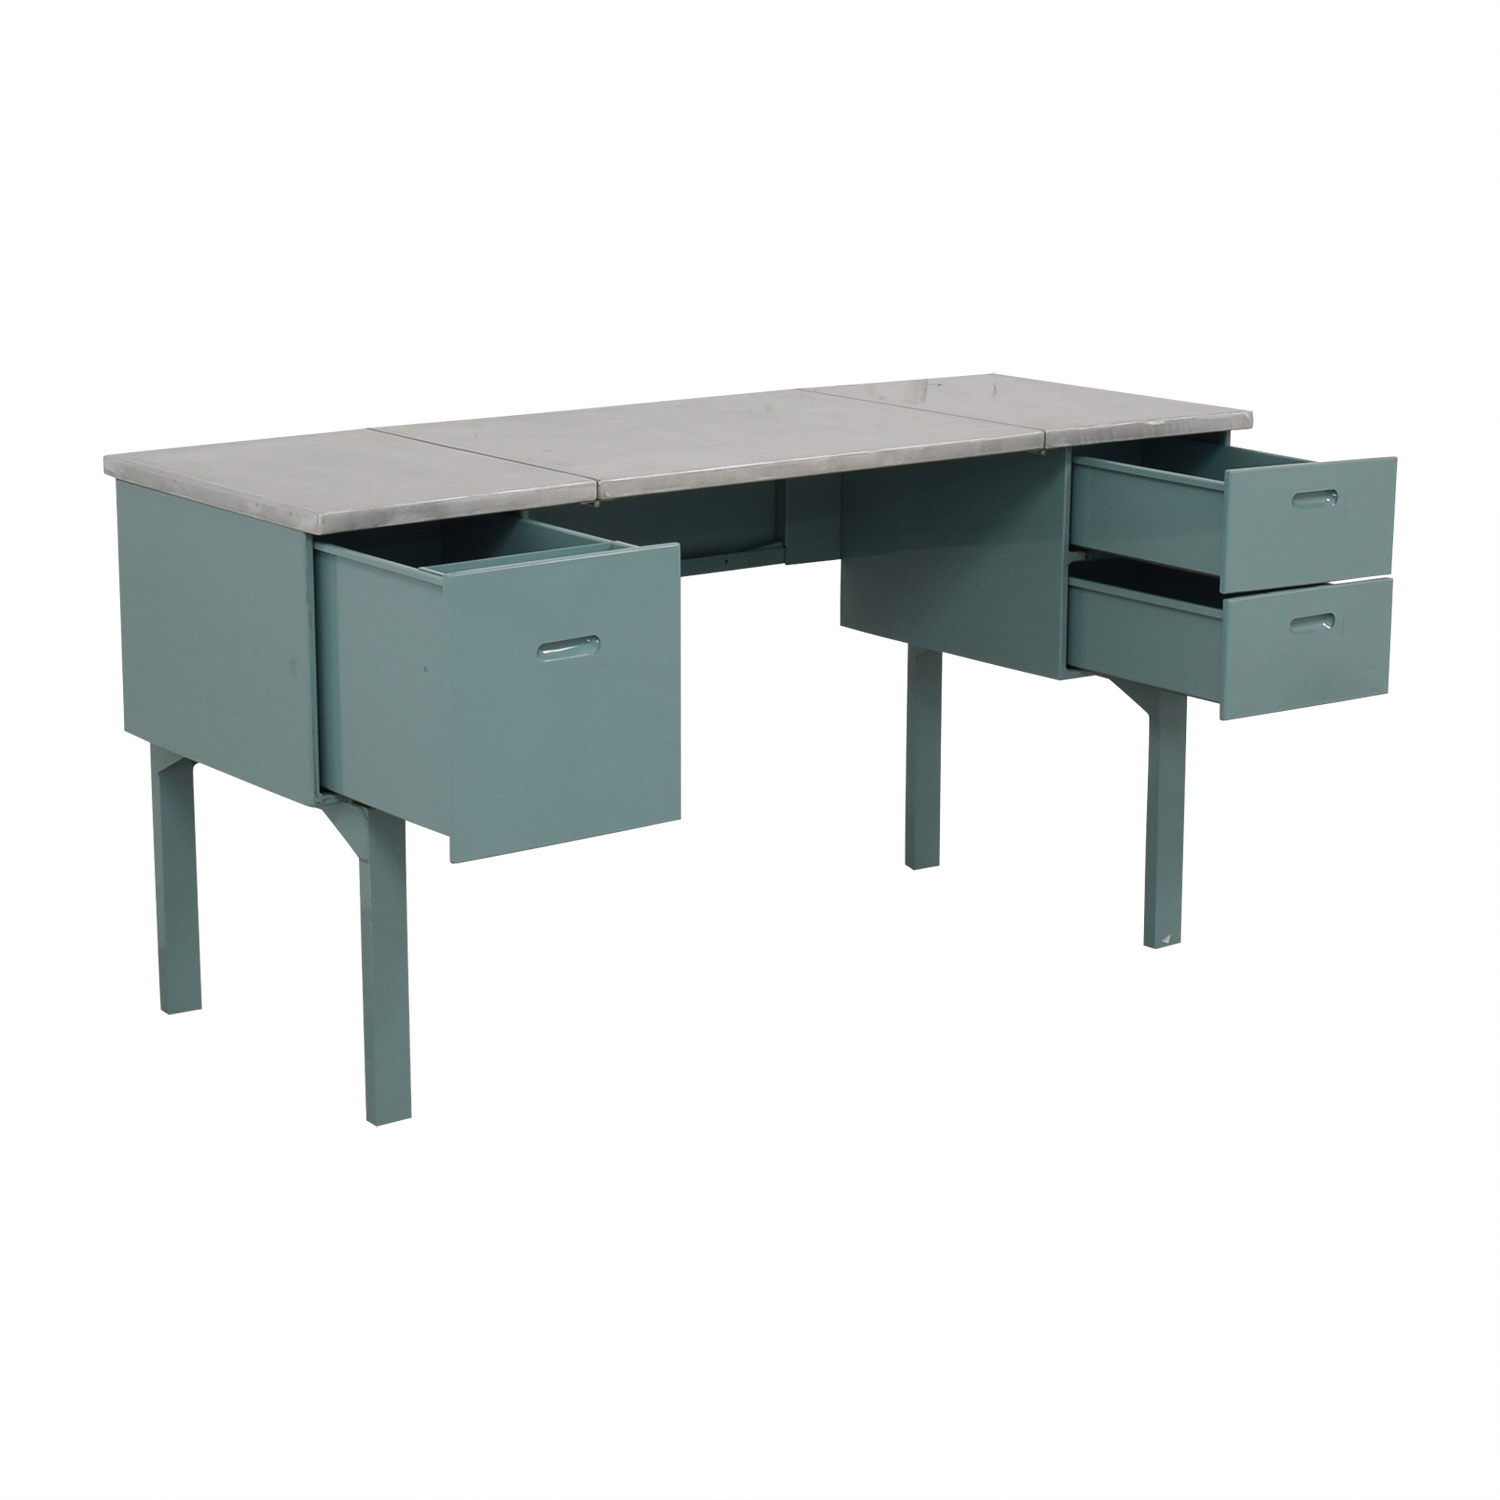 Vintage Steel and Mint Green Collapsible Military Nurses Desk sale